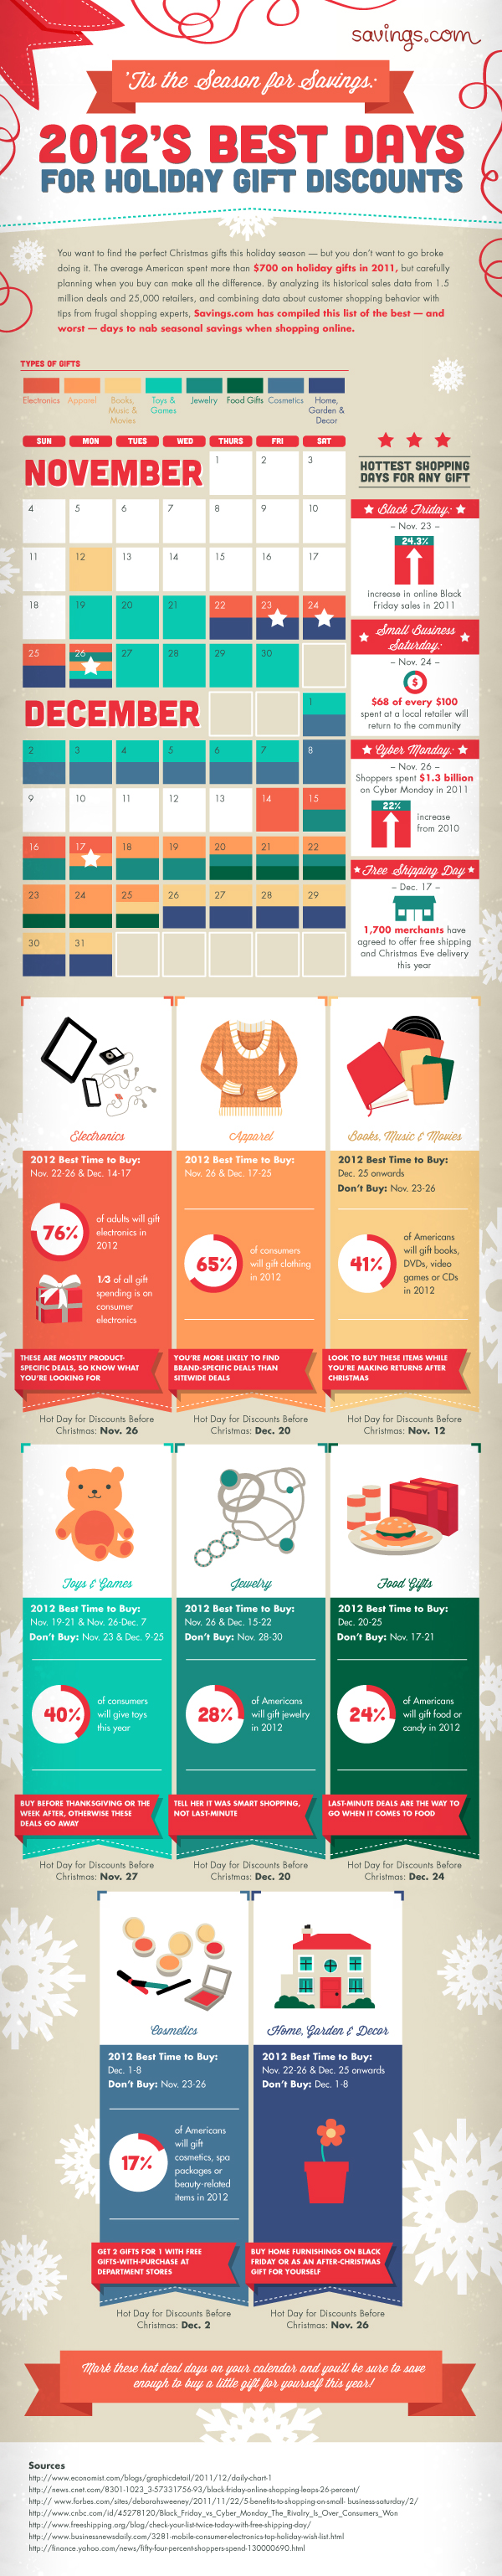 The Best Days to Buy Holiday Gifts